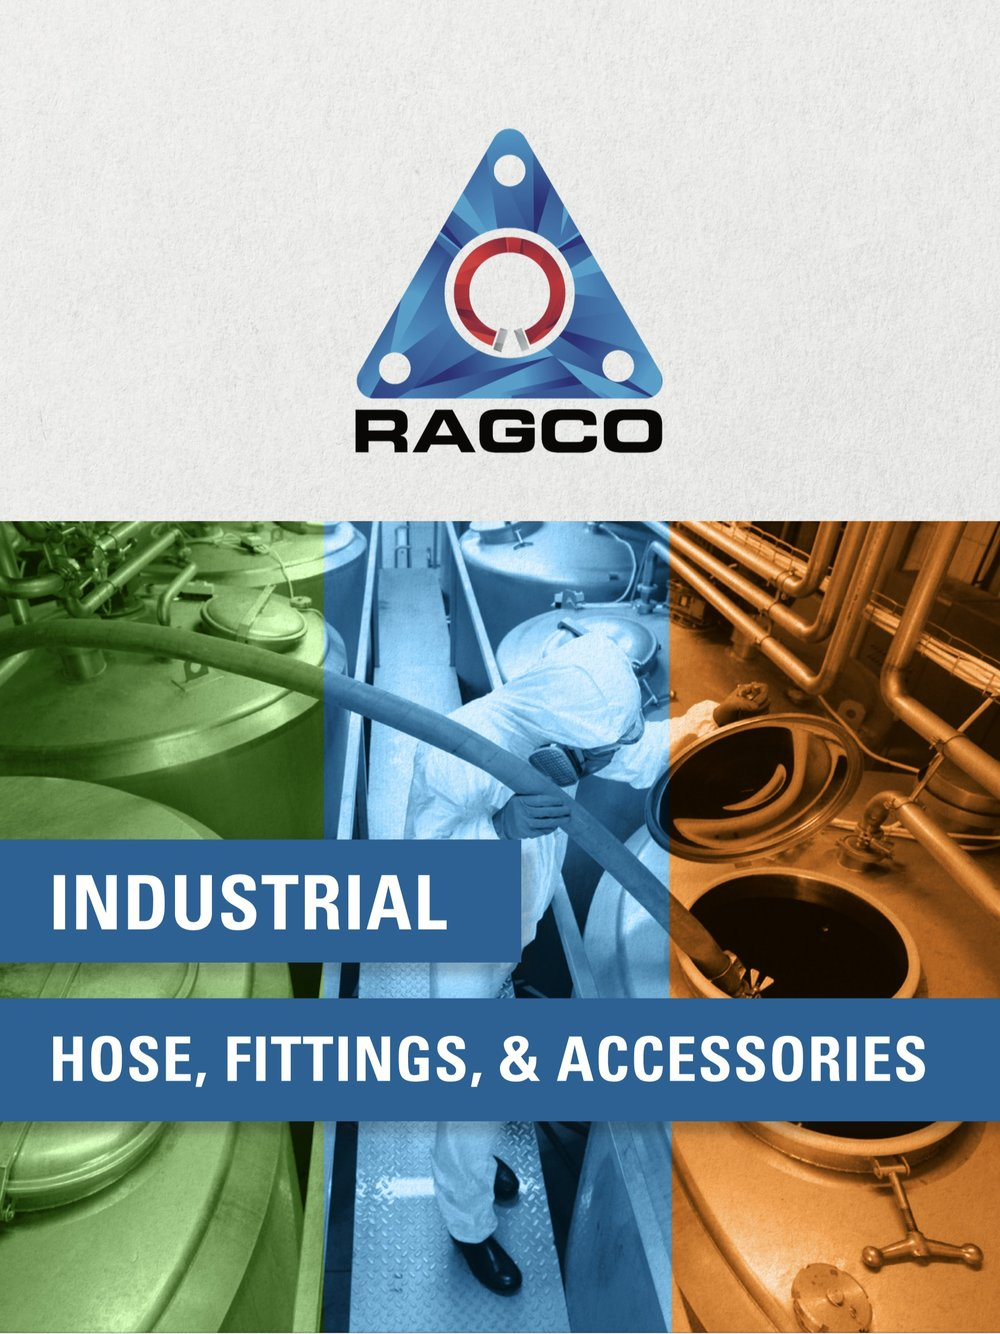 Download & View - INDUSTRIAL HOSE, FITTINGS, & ACCESSORIES